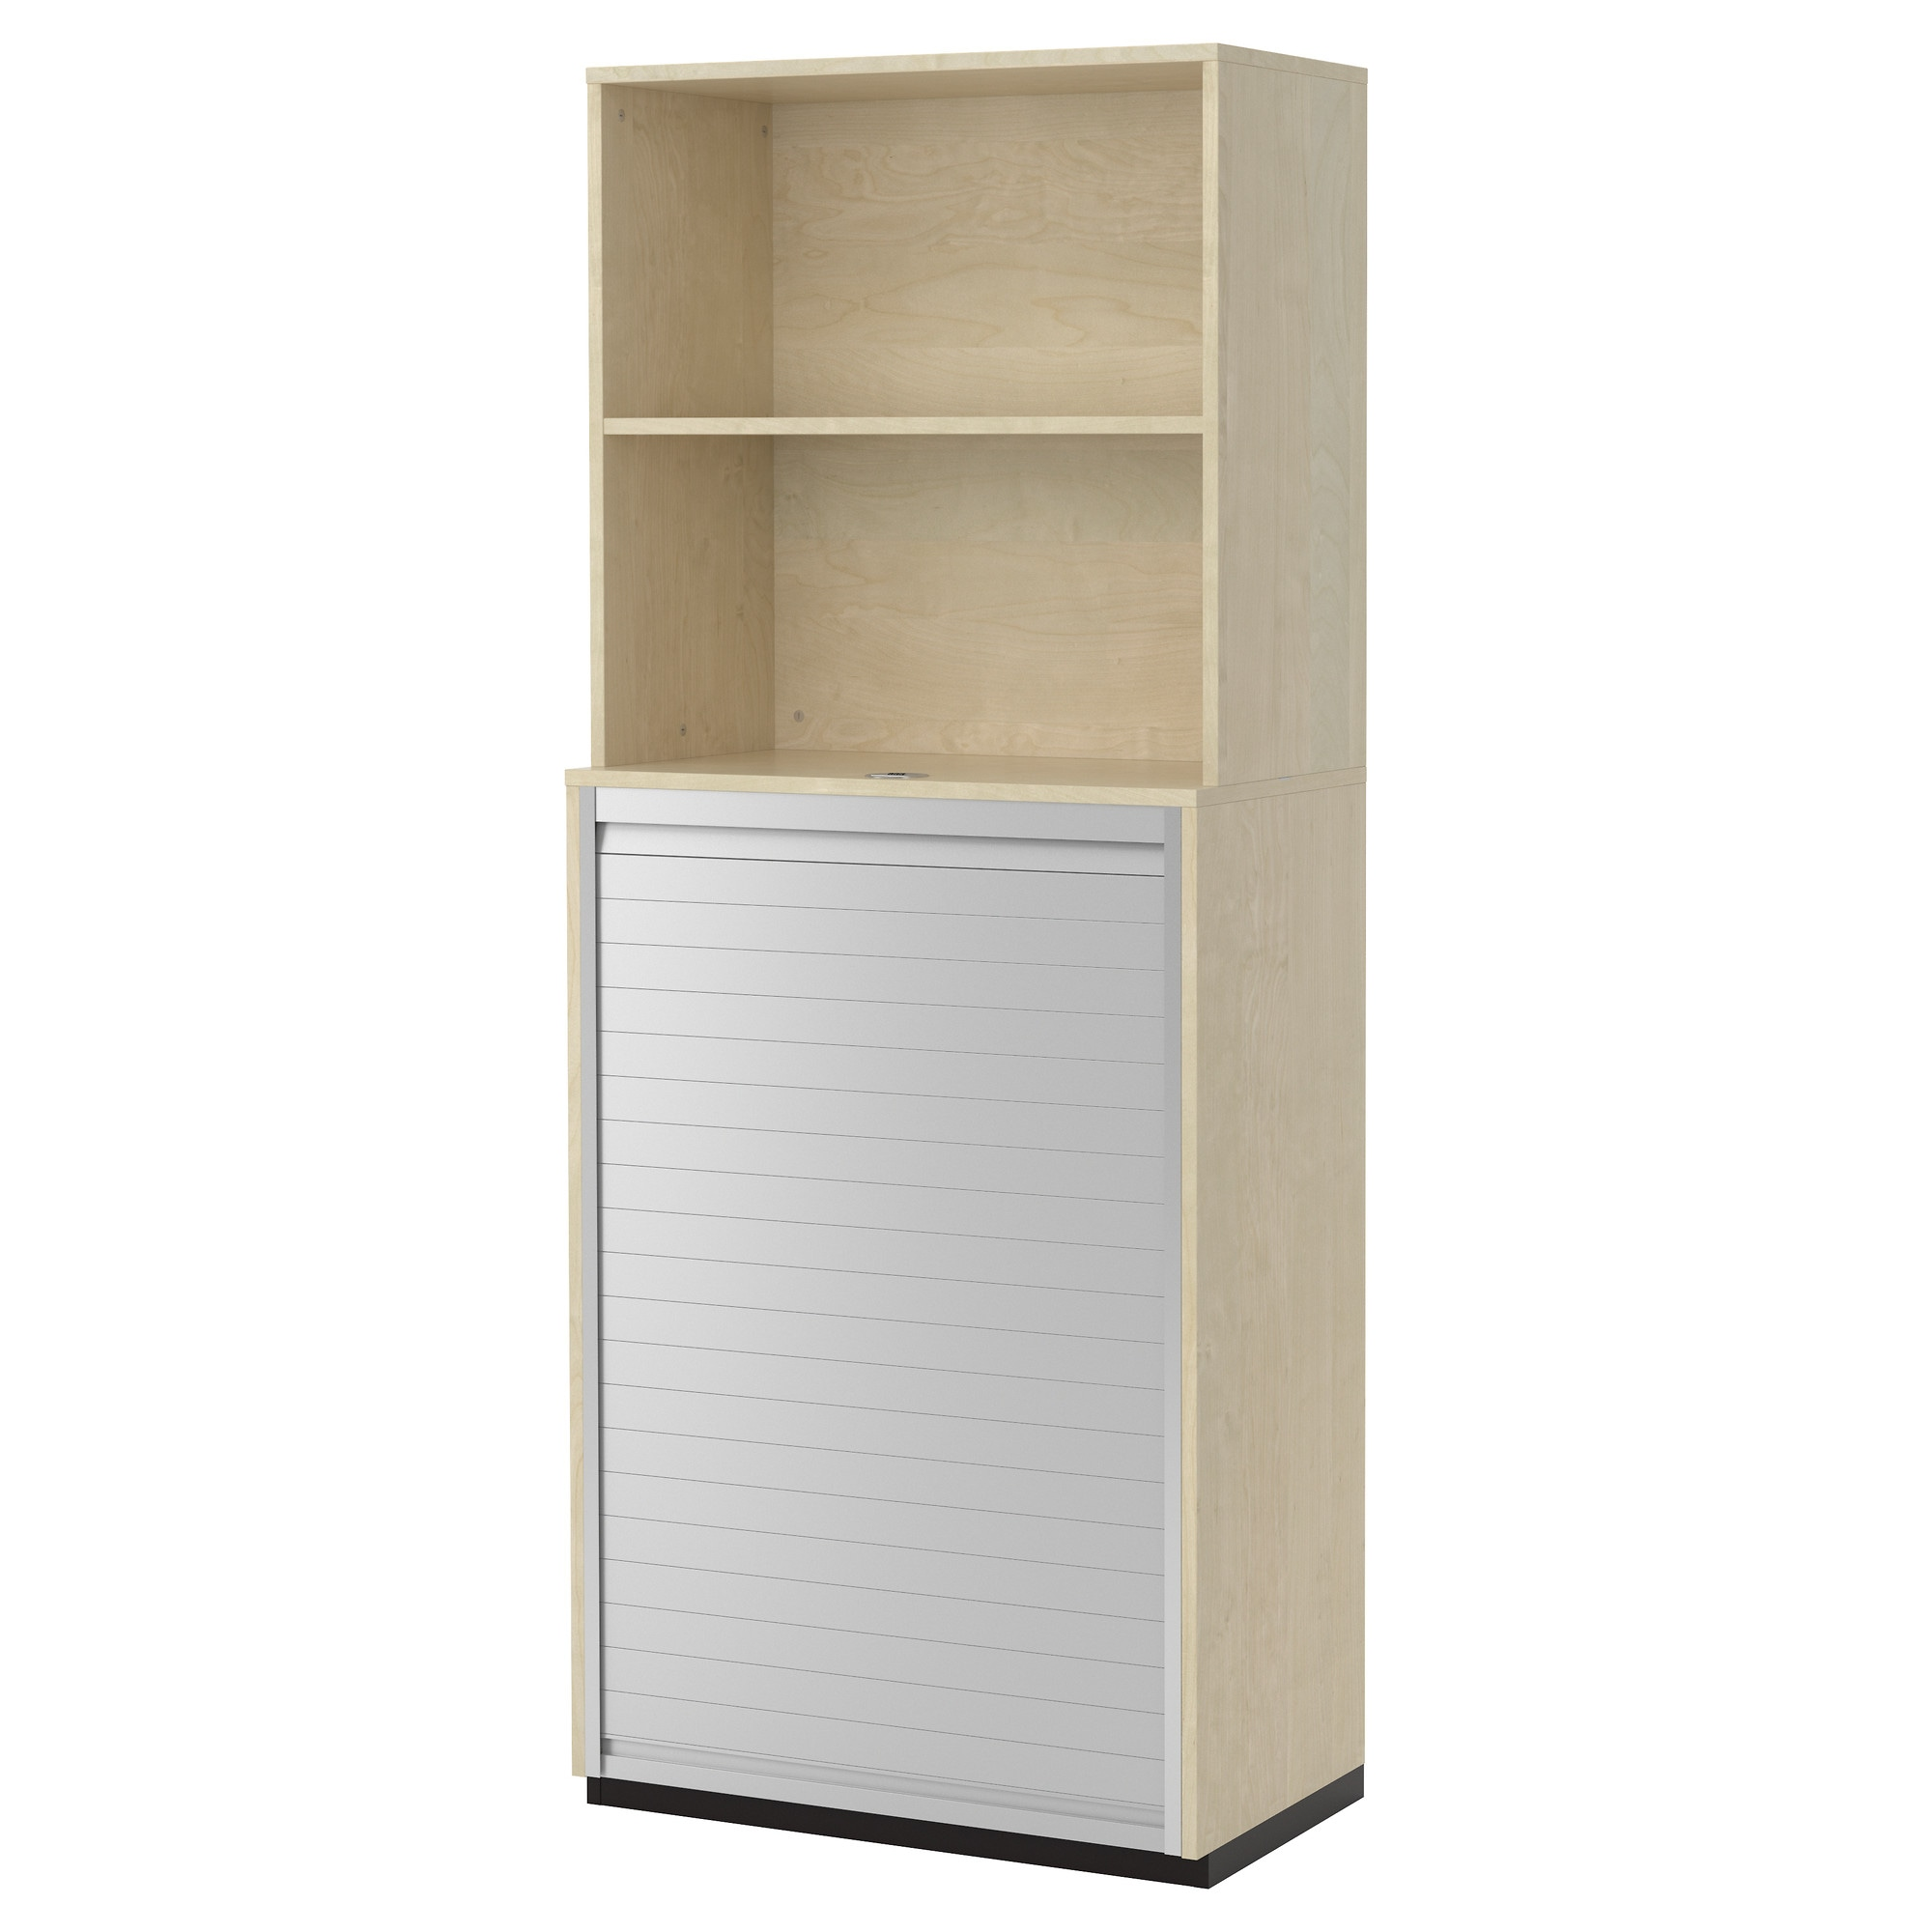 galant storage combination with roll front birch veneer width 31 12 nice wall hanging office organizer 4